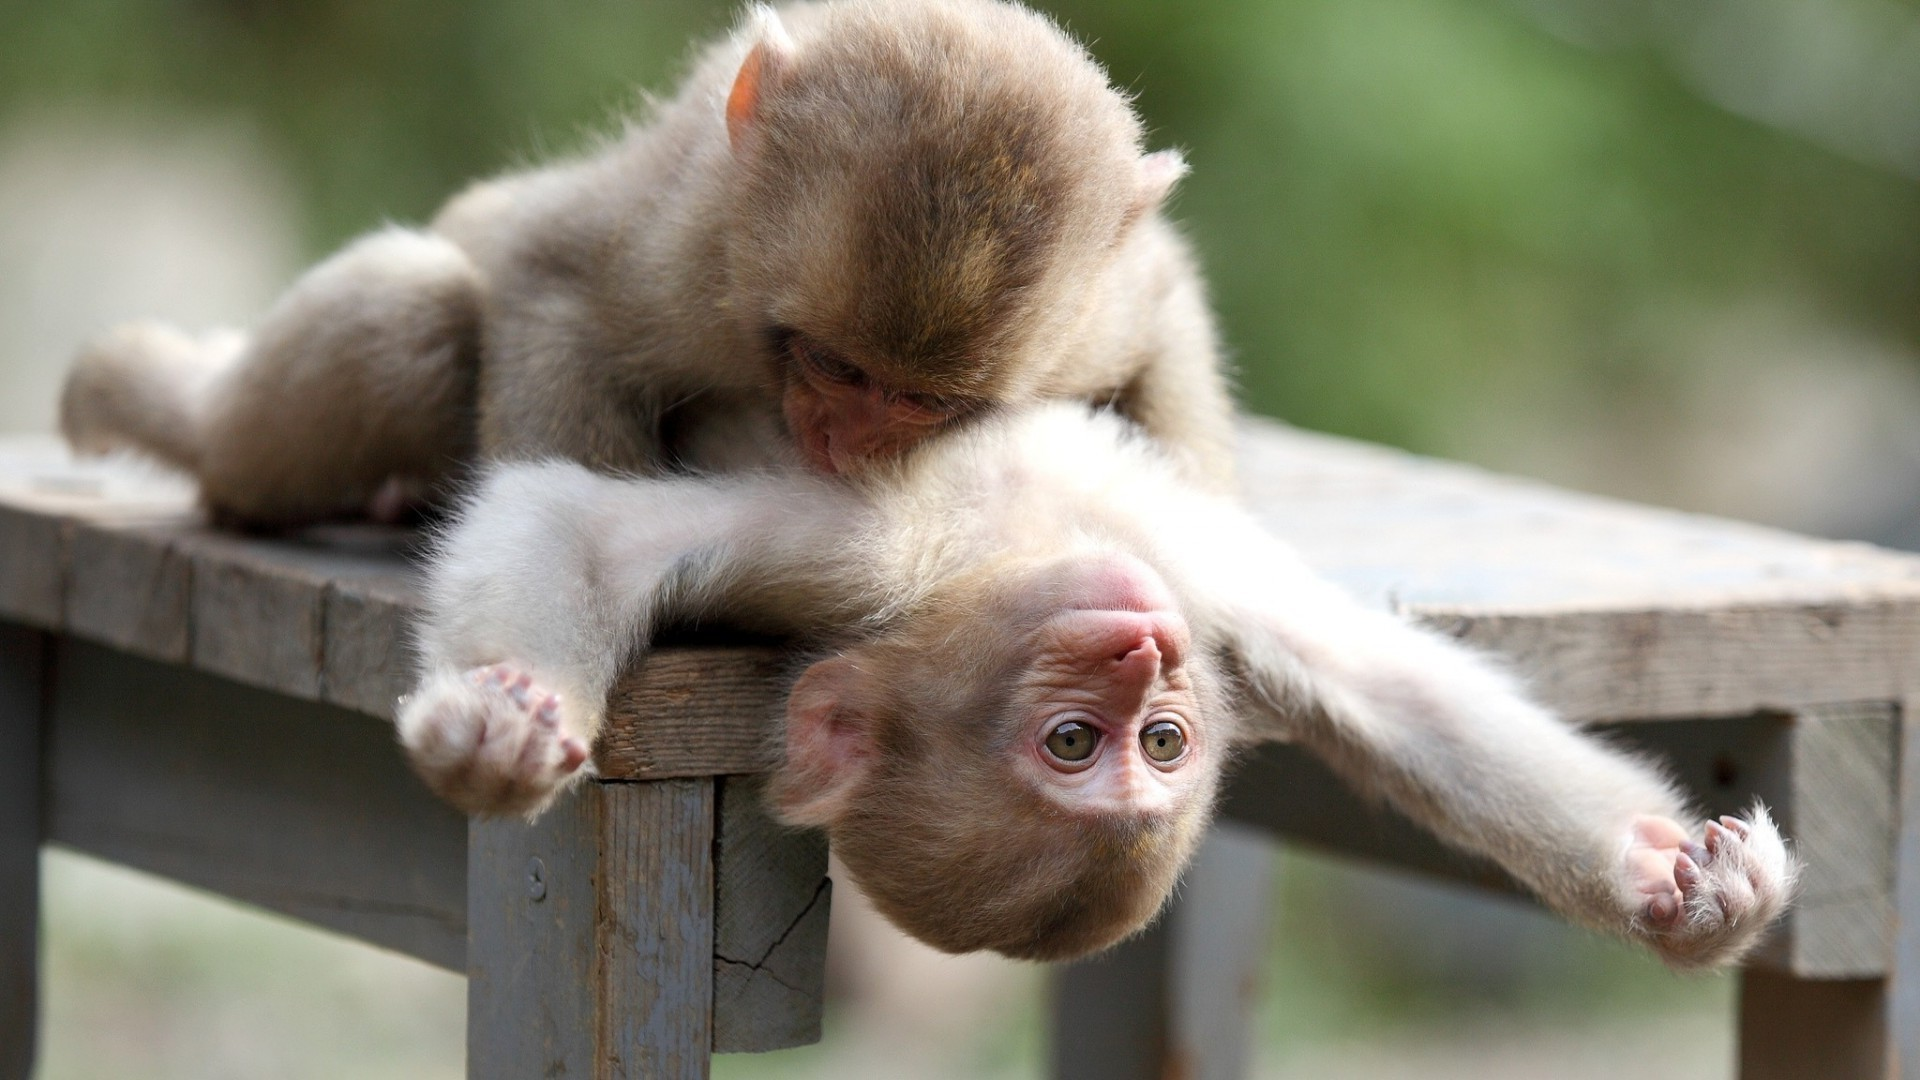 Monkeys And Bananas Cute Wallpaper Monkey Funny Wallpapers 54 Background Pictures